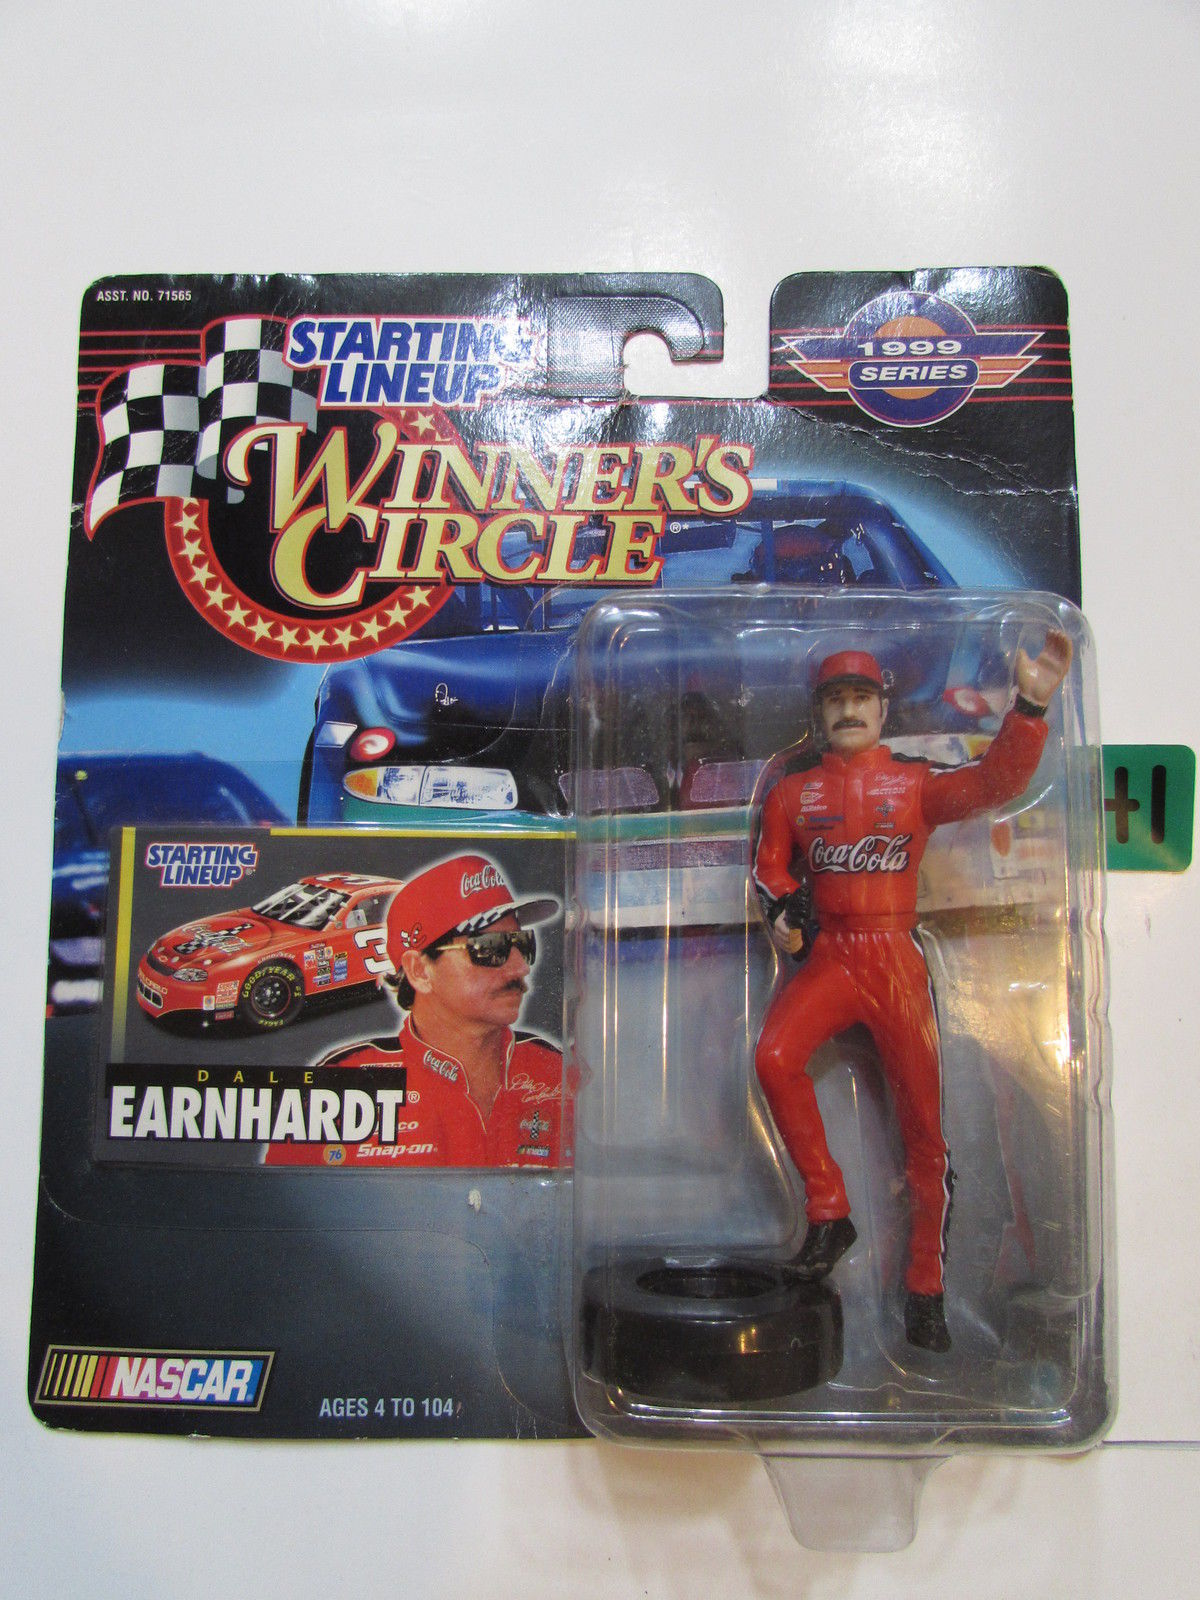 NASCAR WINNER'S CIRCLE 1999 SERIES STARTING LINE UP DALE EARNHARDT FIGURE